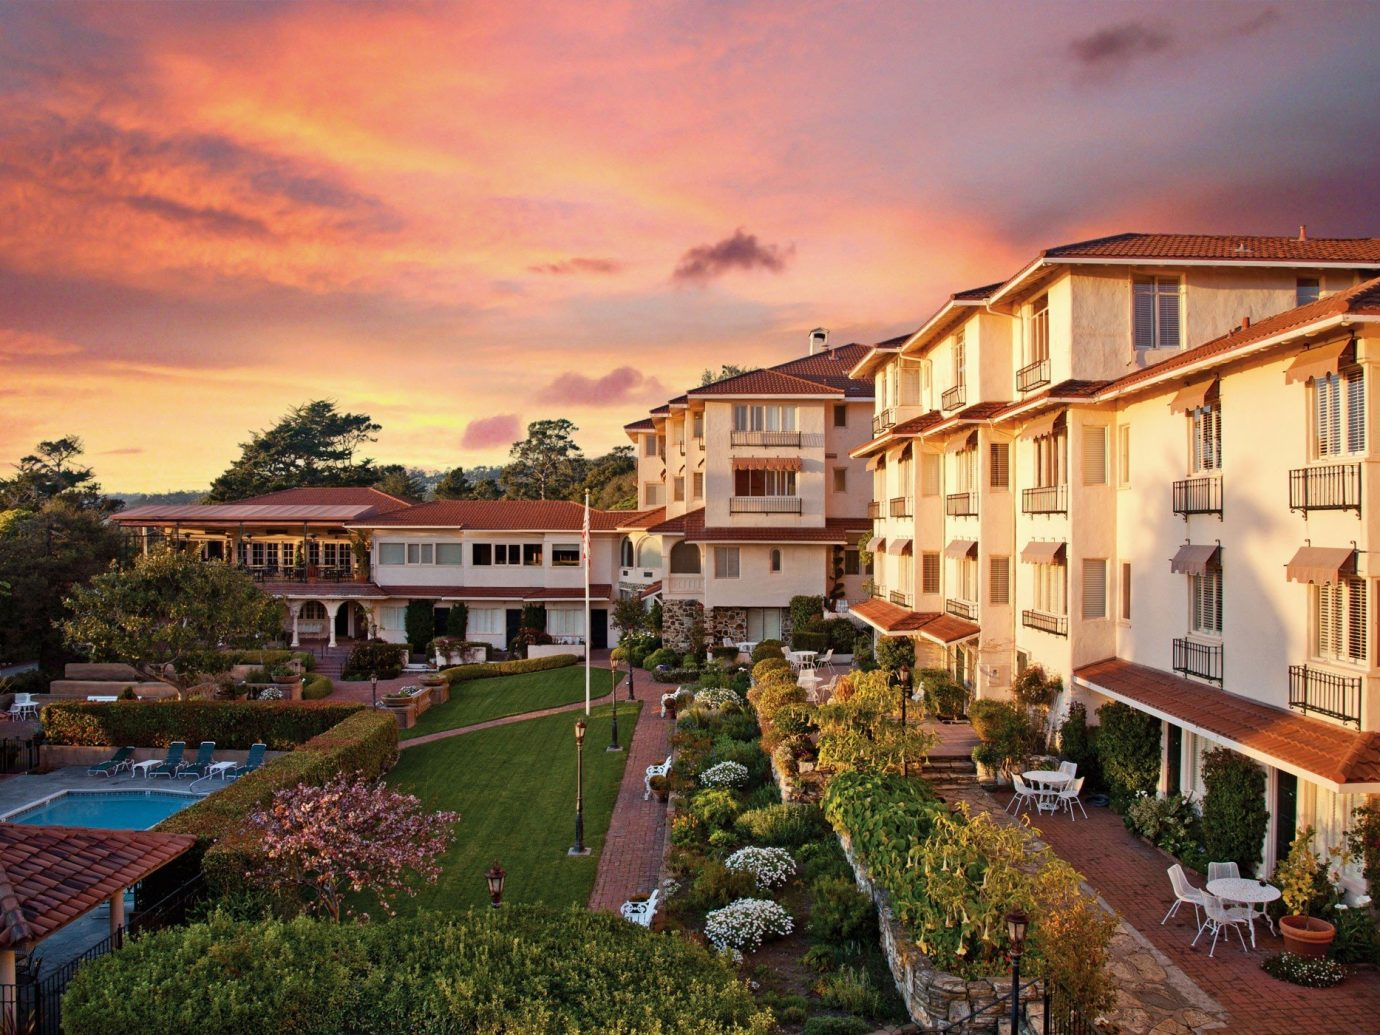 Hotels building outdoor sky house property Town neighbourhood residential area estate vacation real estate Resort